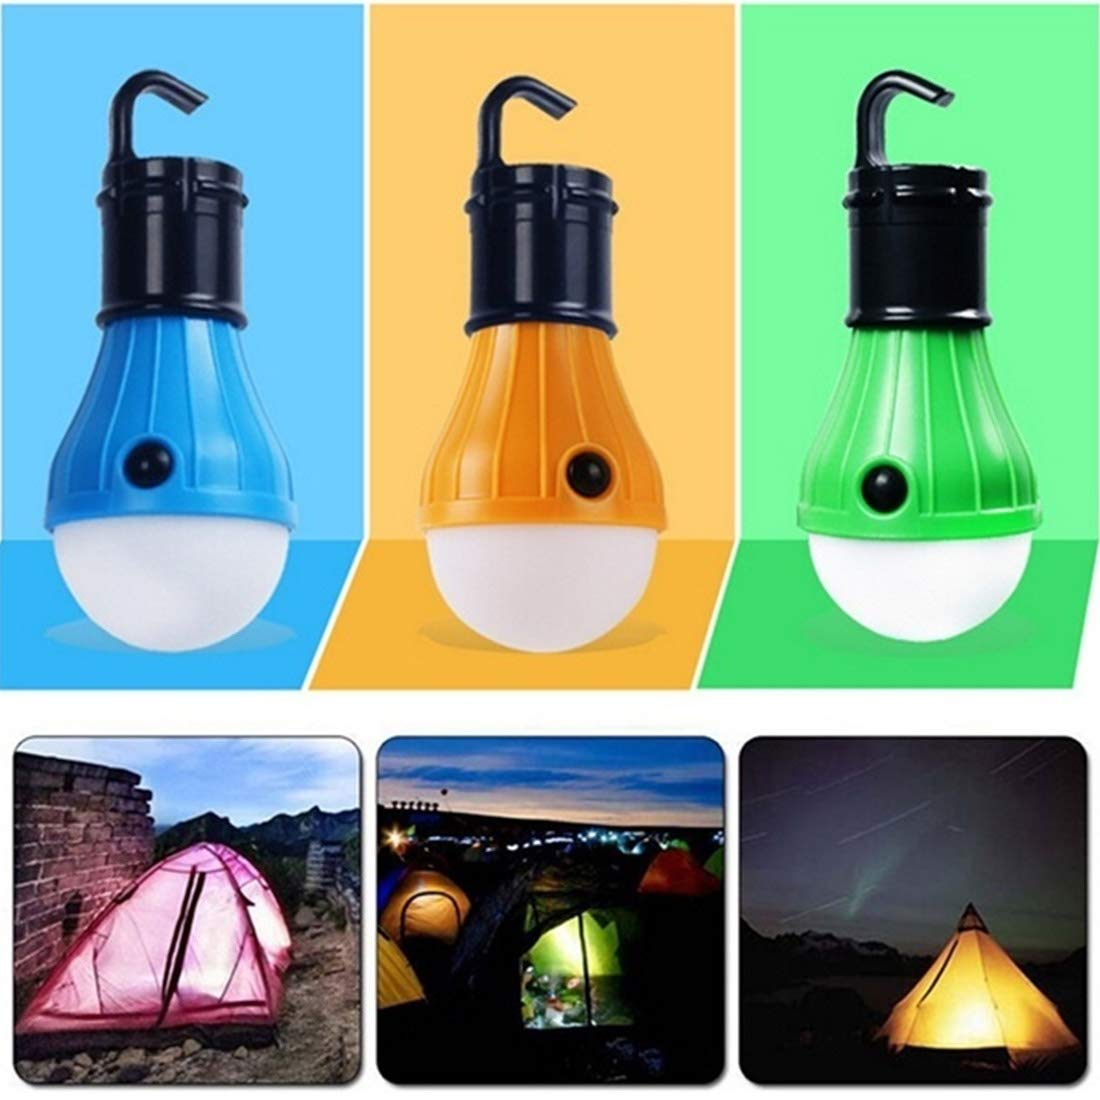 FUT_Forever Tent Lamp Portable LED Tent Light 1/2 Packs Hurricane Emergency Lights Camping Light Bulbs for Camping Hiking Backpacking Fishing, Battery Powered